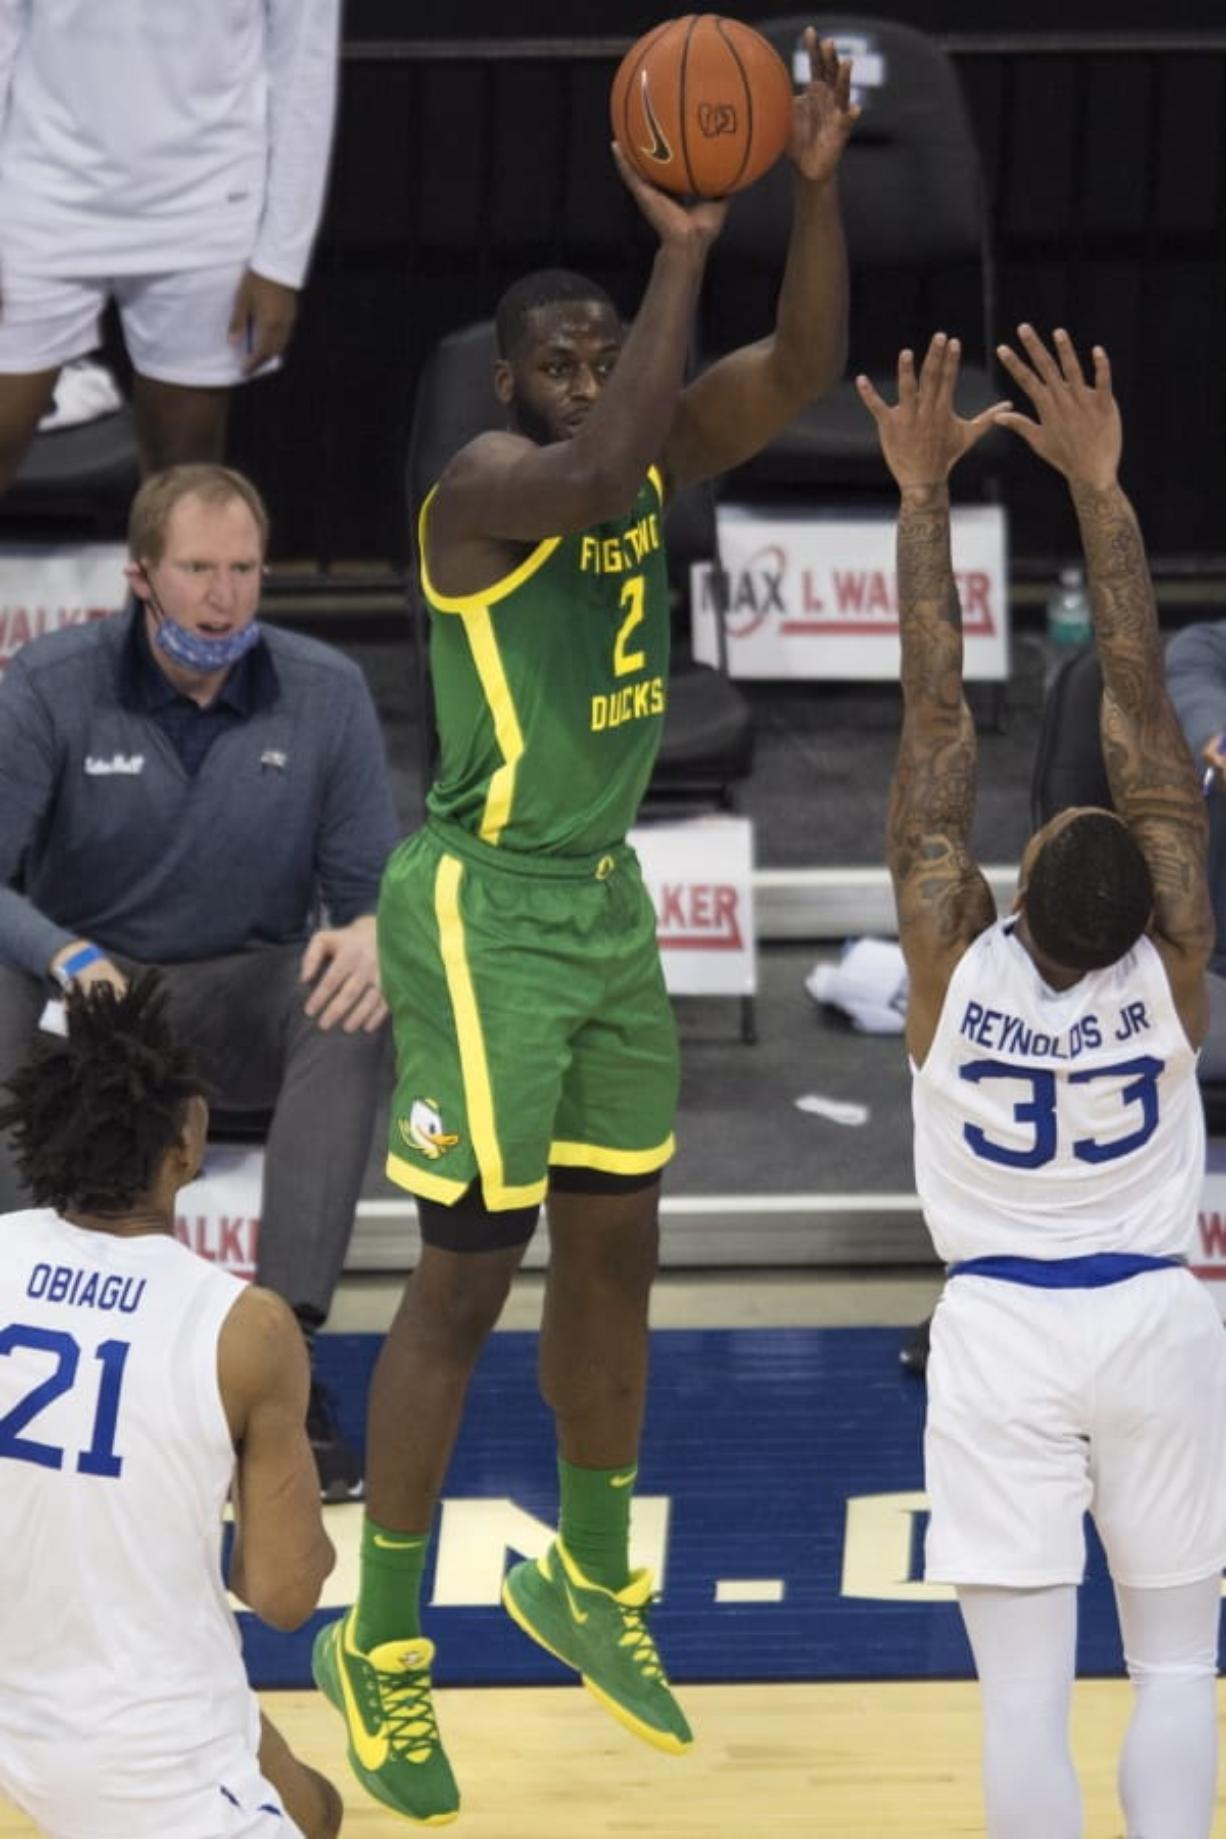 Oregon's Eugene Omoruyi scores against Seton Hall's Ike Obiagu, left, and Shavar Reynolds Jr. during the first half of an NCAA college basketball game in Omaha, Neb., Friday, Dec. 4, 2020.